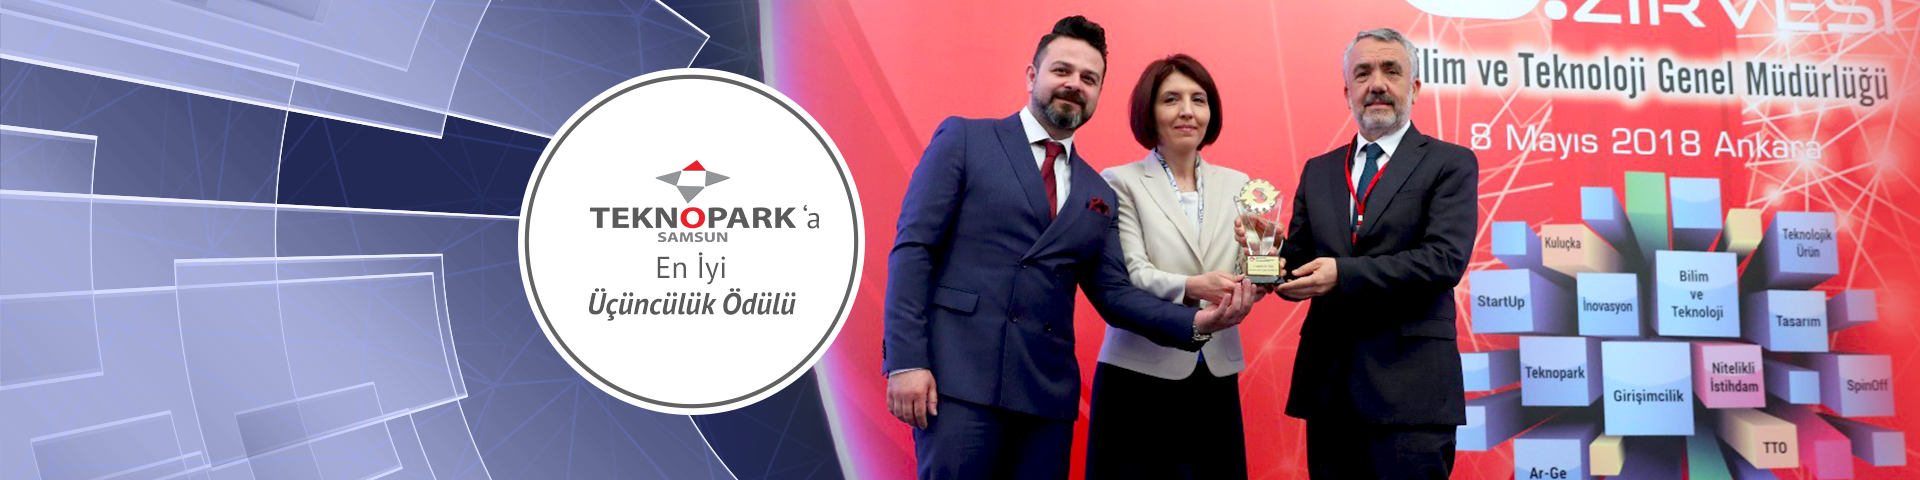 http://www.omu.edu.tr/sites/default/files/files/samsun_teknopark_receives_third_prize_/samsunteknopark-ucunculuk-slider.jpg